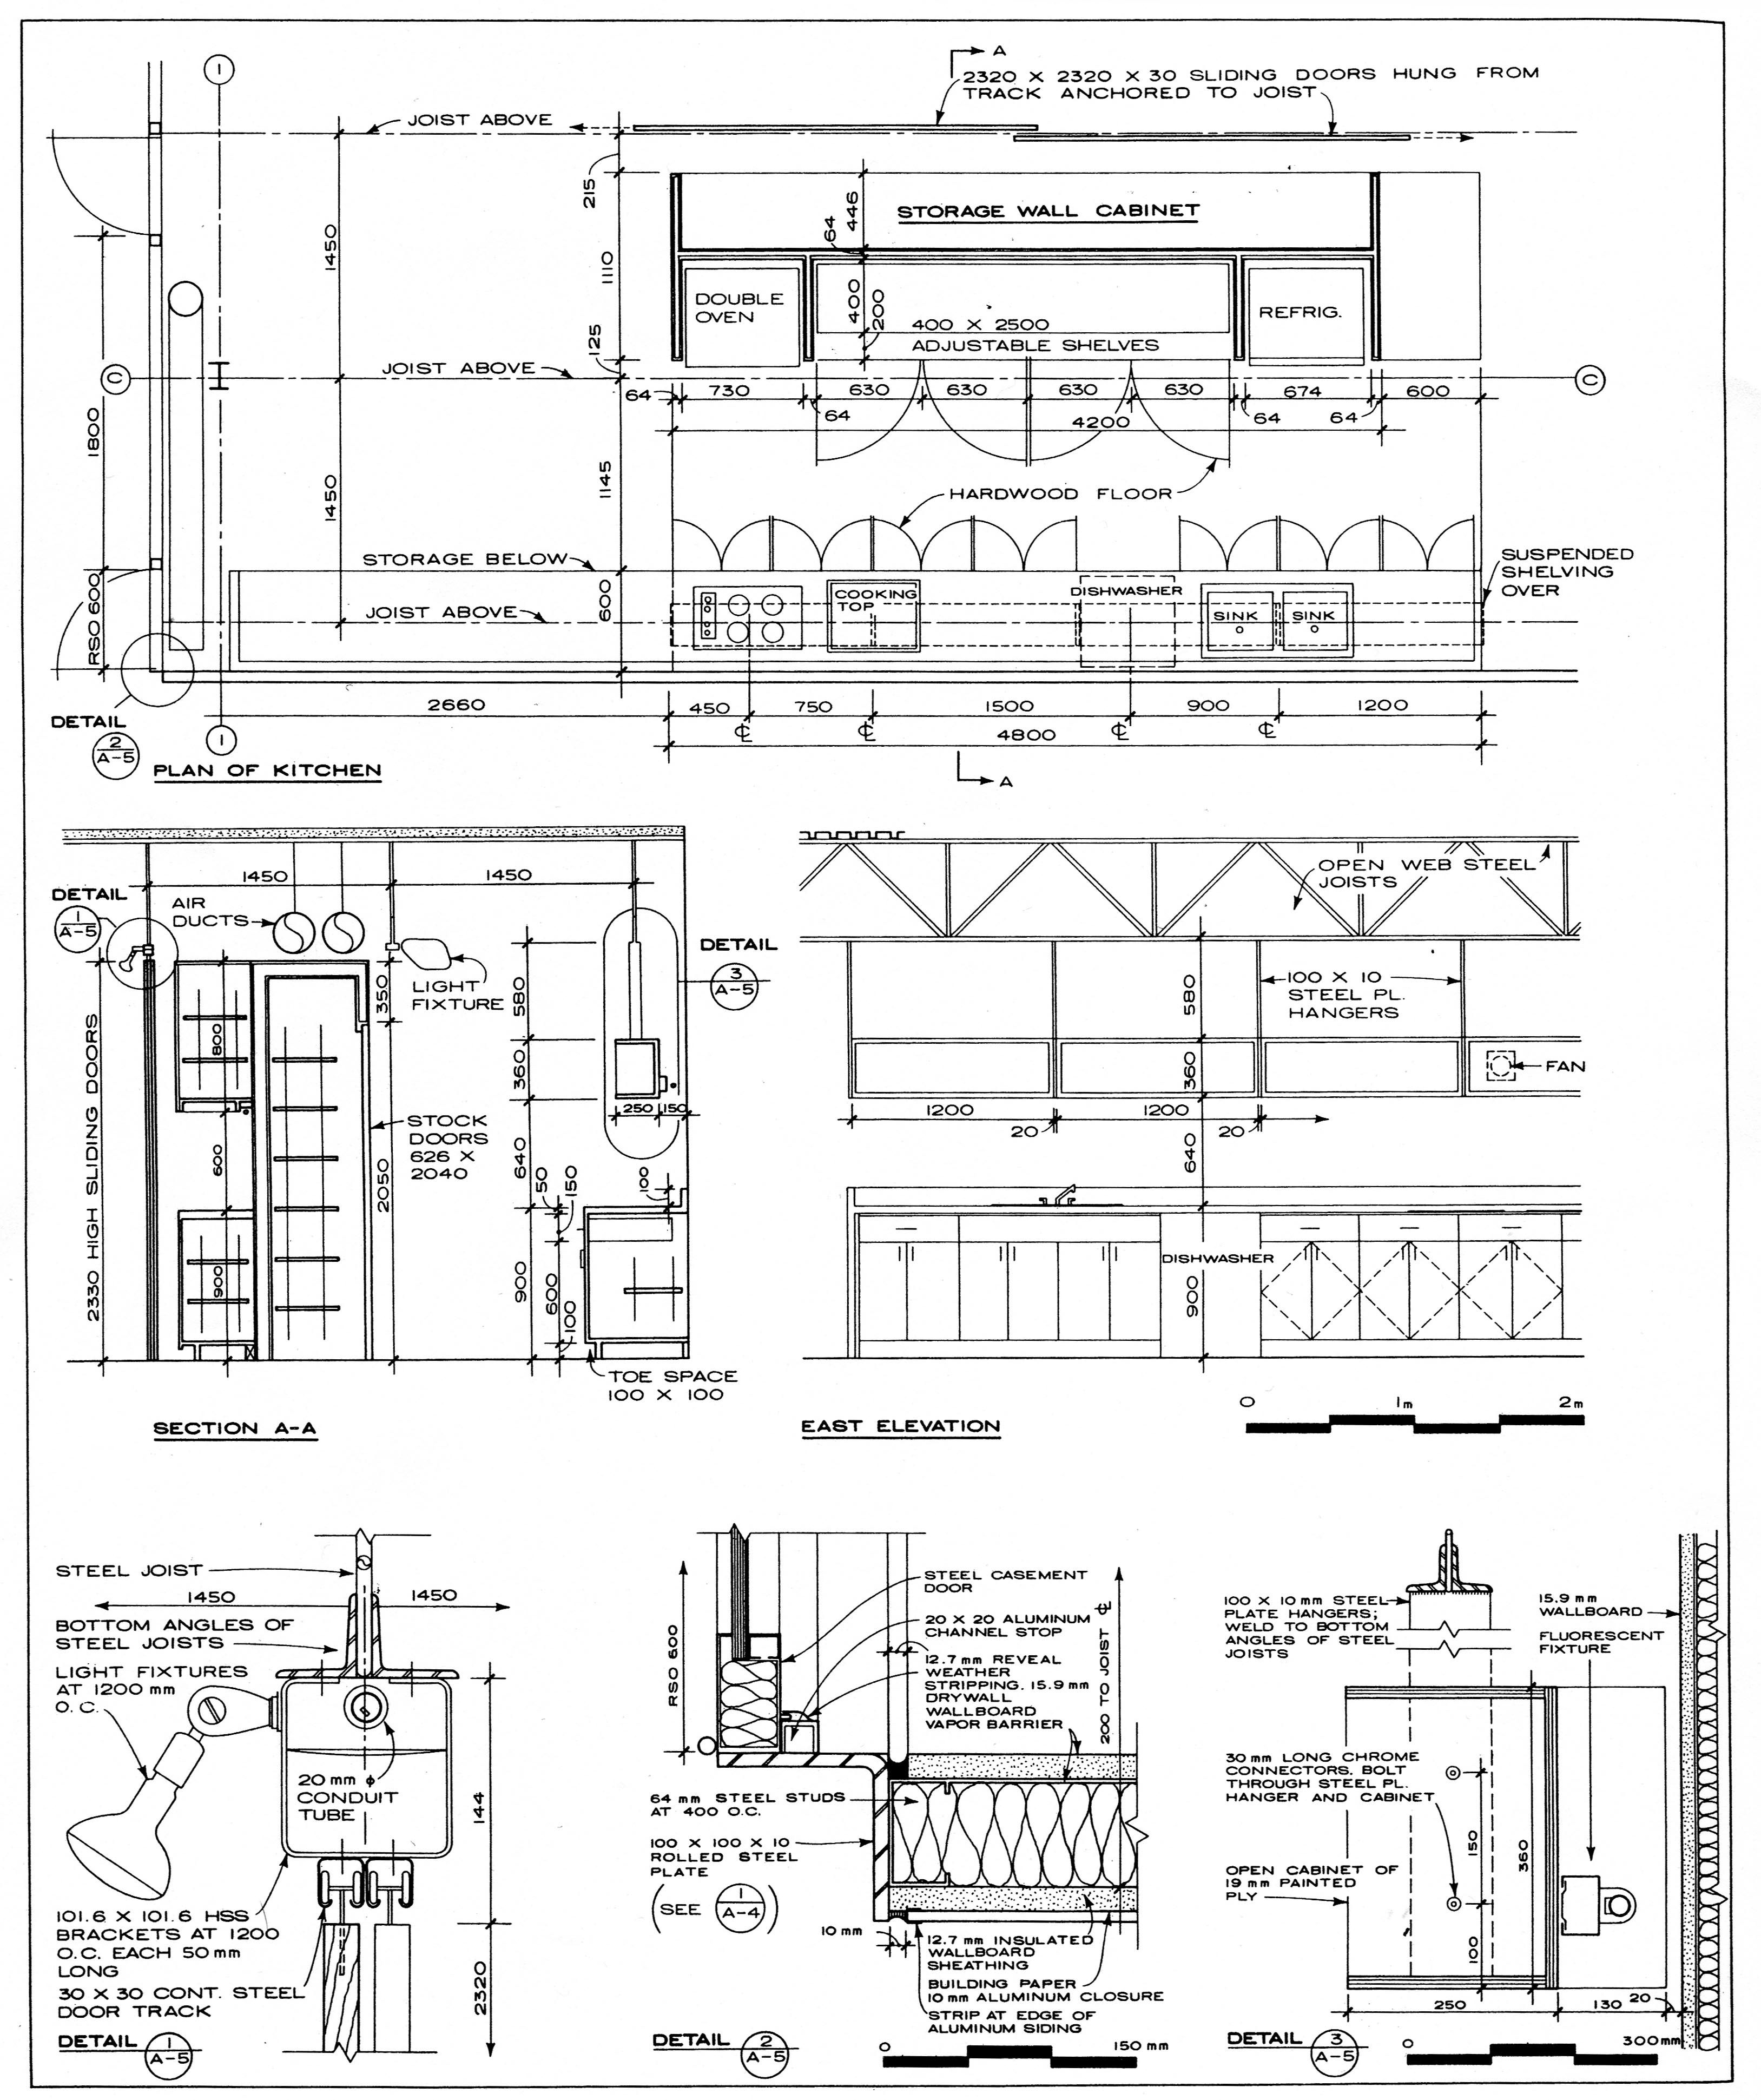 Plan enlargements interior elevations and details from the wolf residence